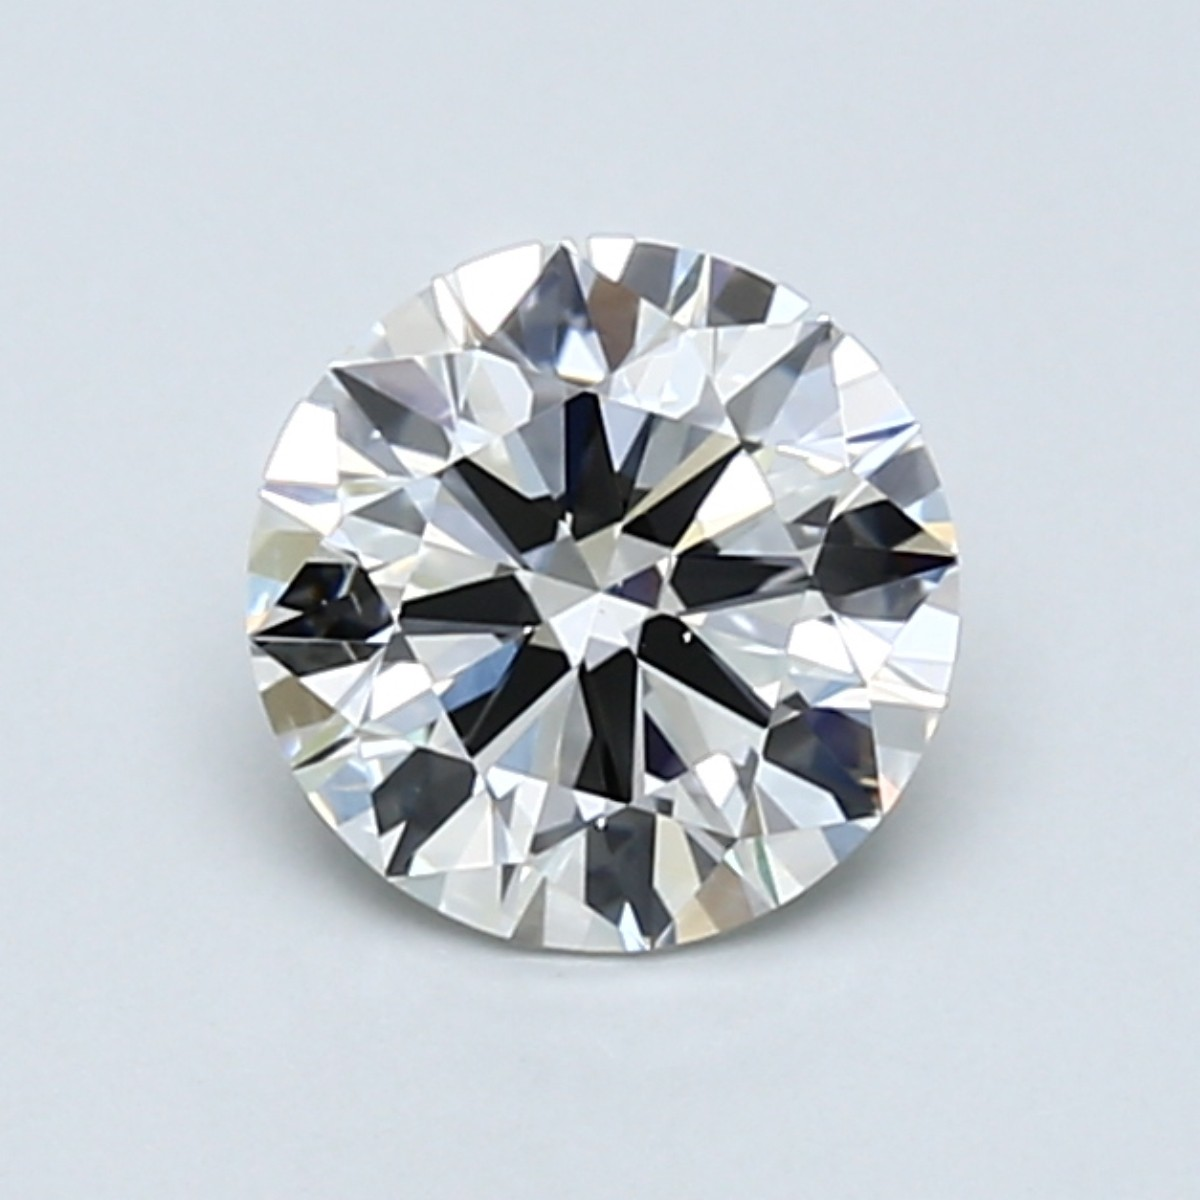 Round 1.0 Carat G Color VS2 Clarity For Sale